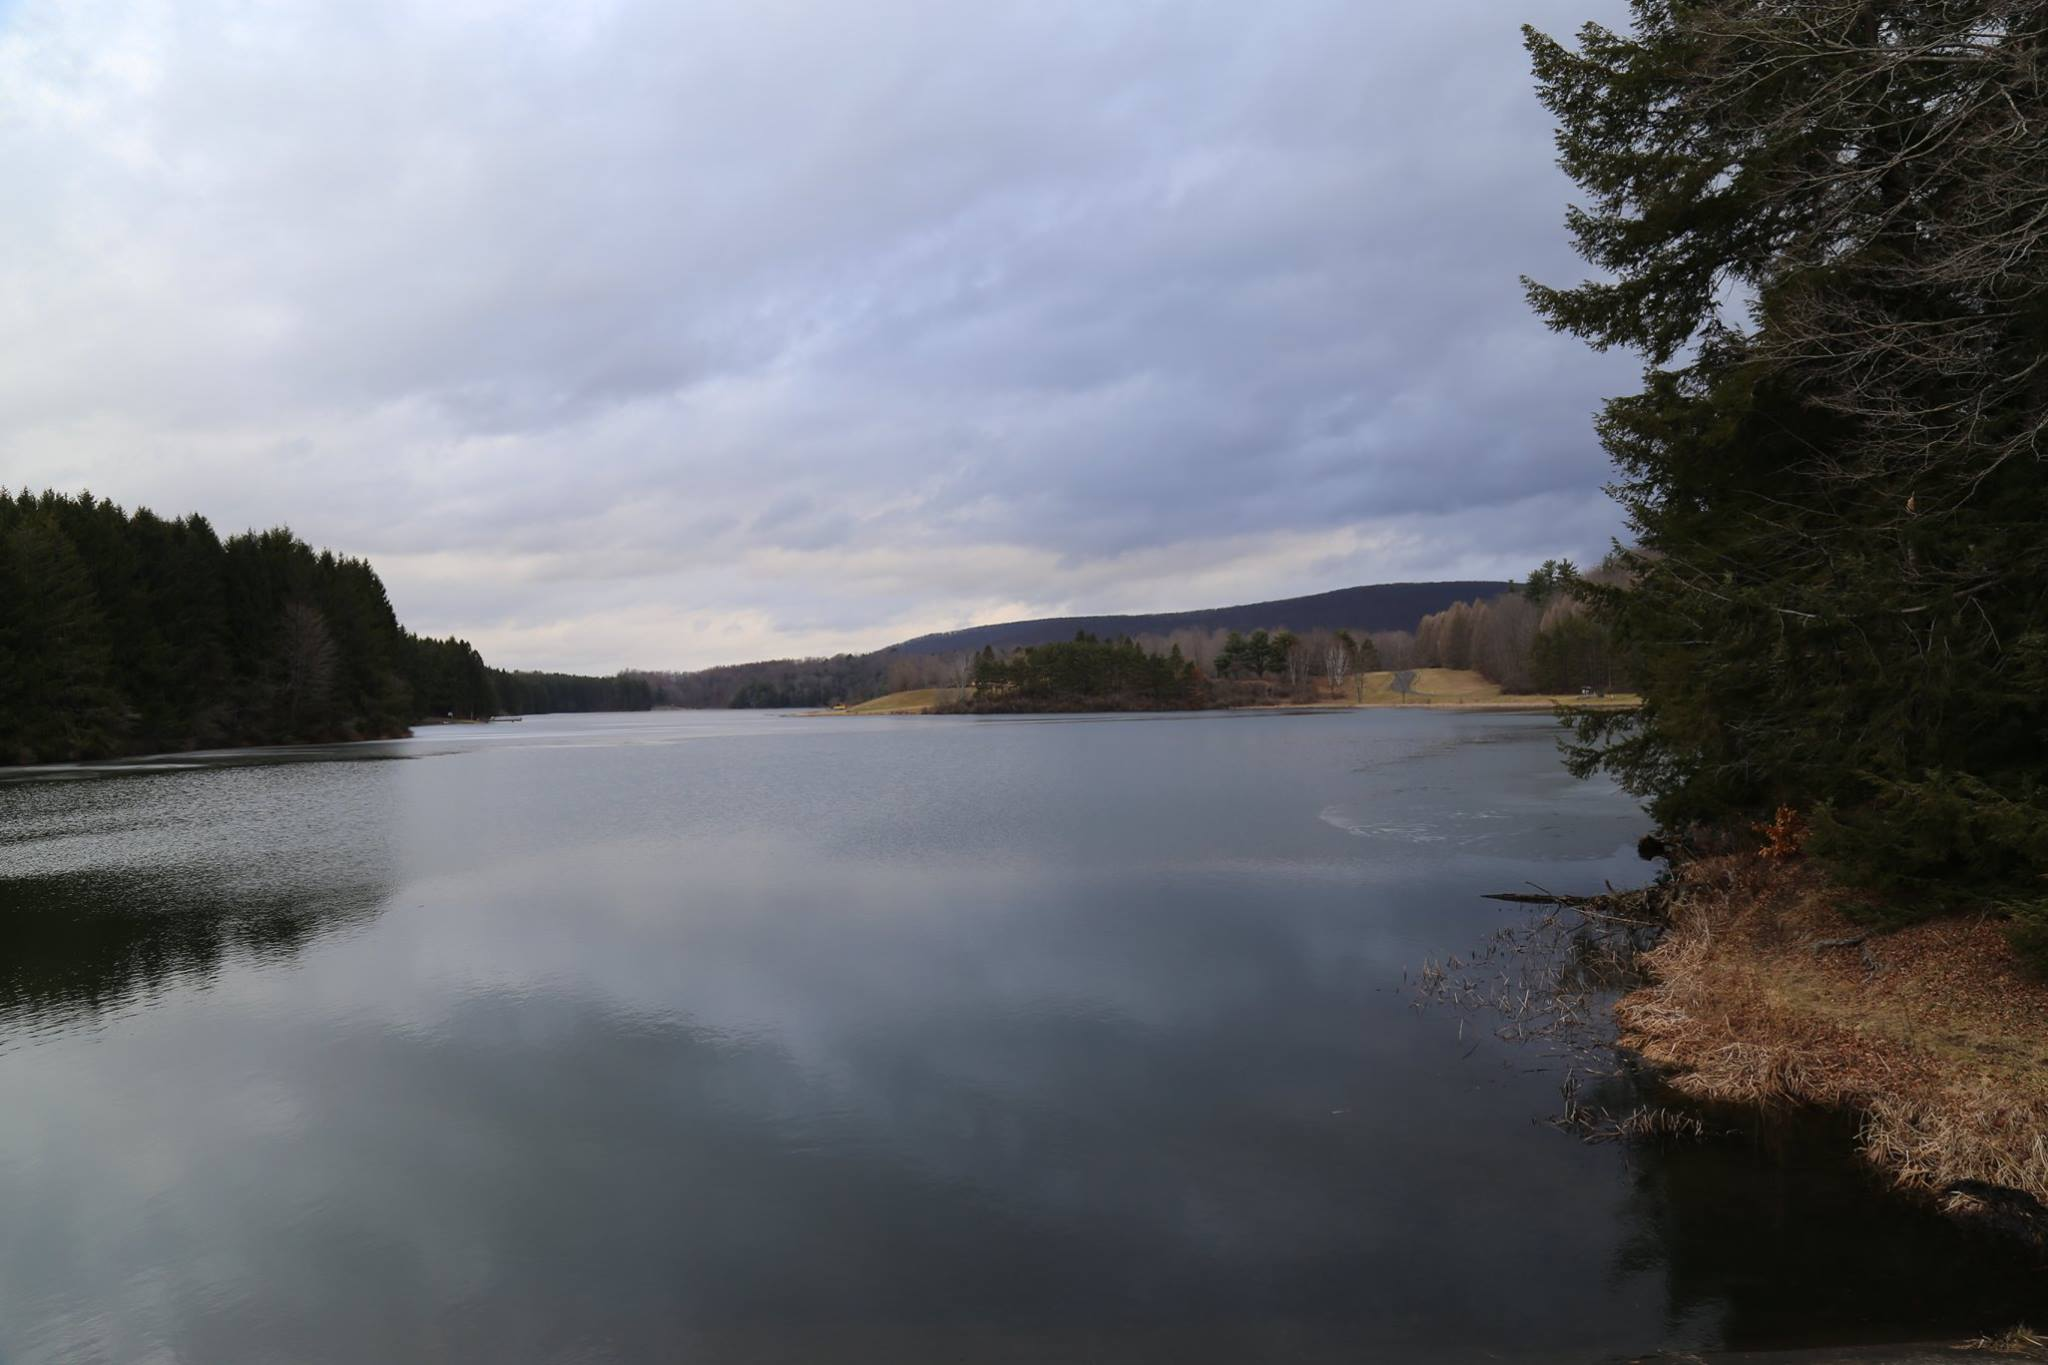 2/25/17 Lakes melting.  Ice mostly gone. Tioga County Fishing report